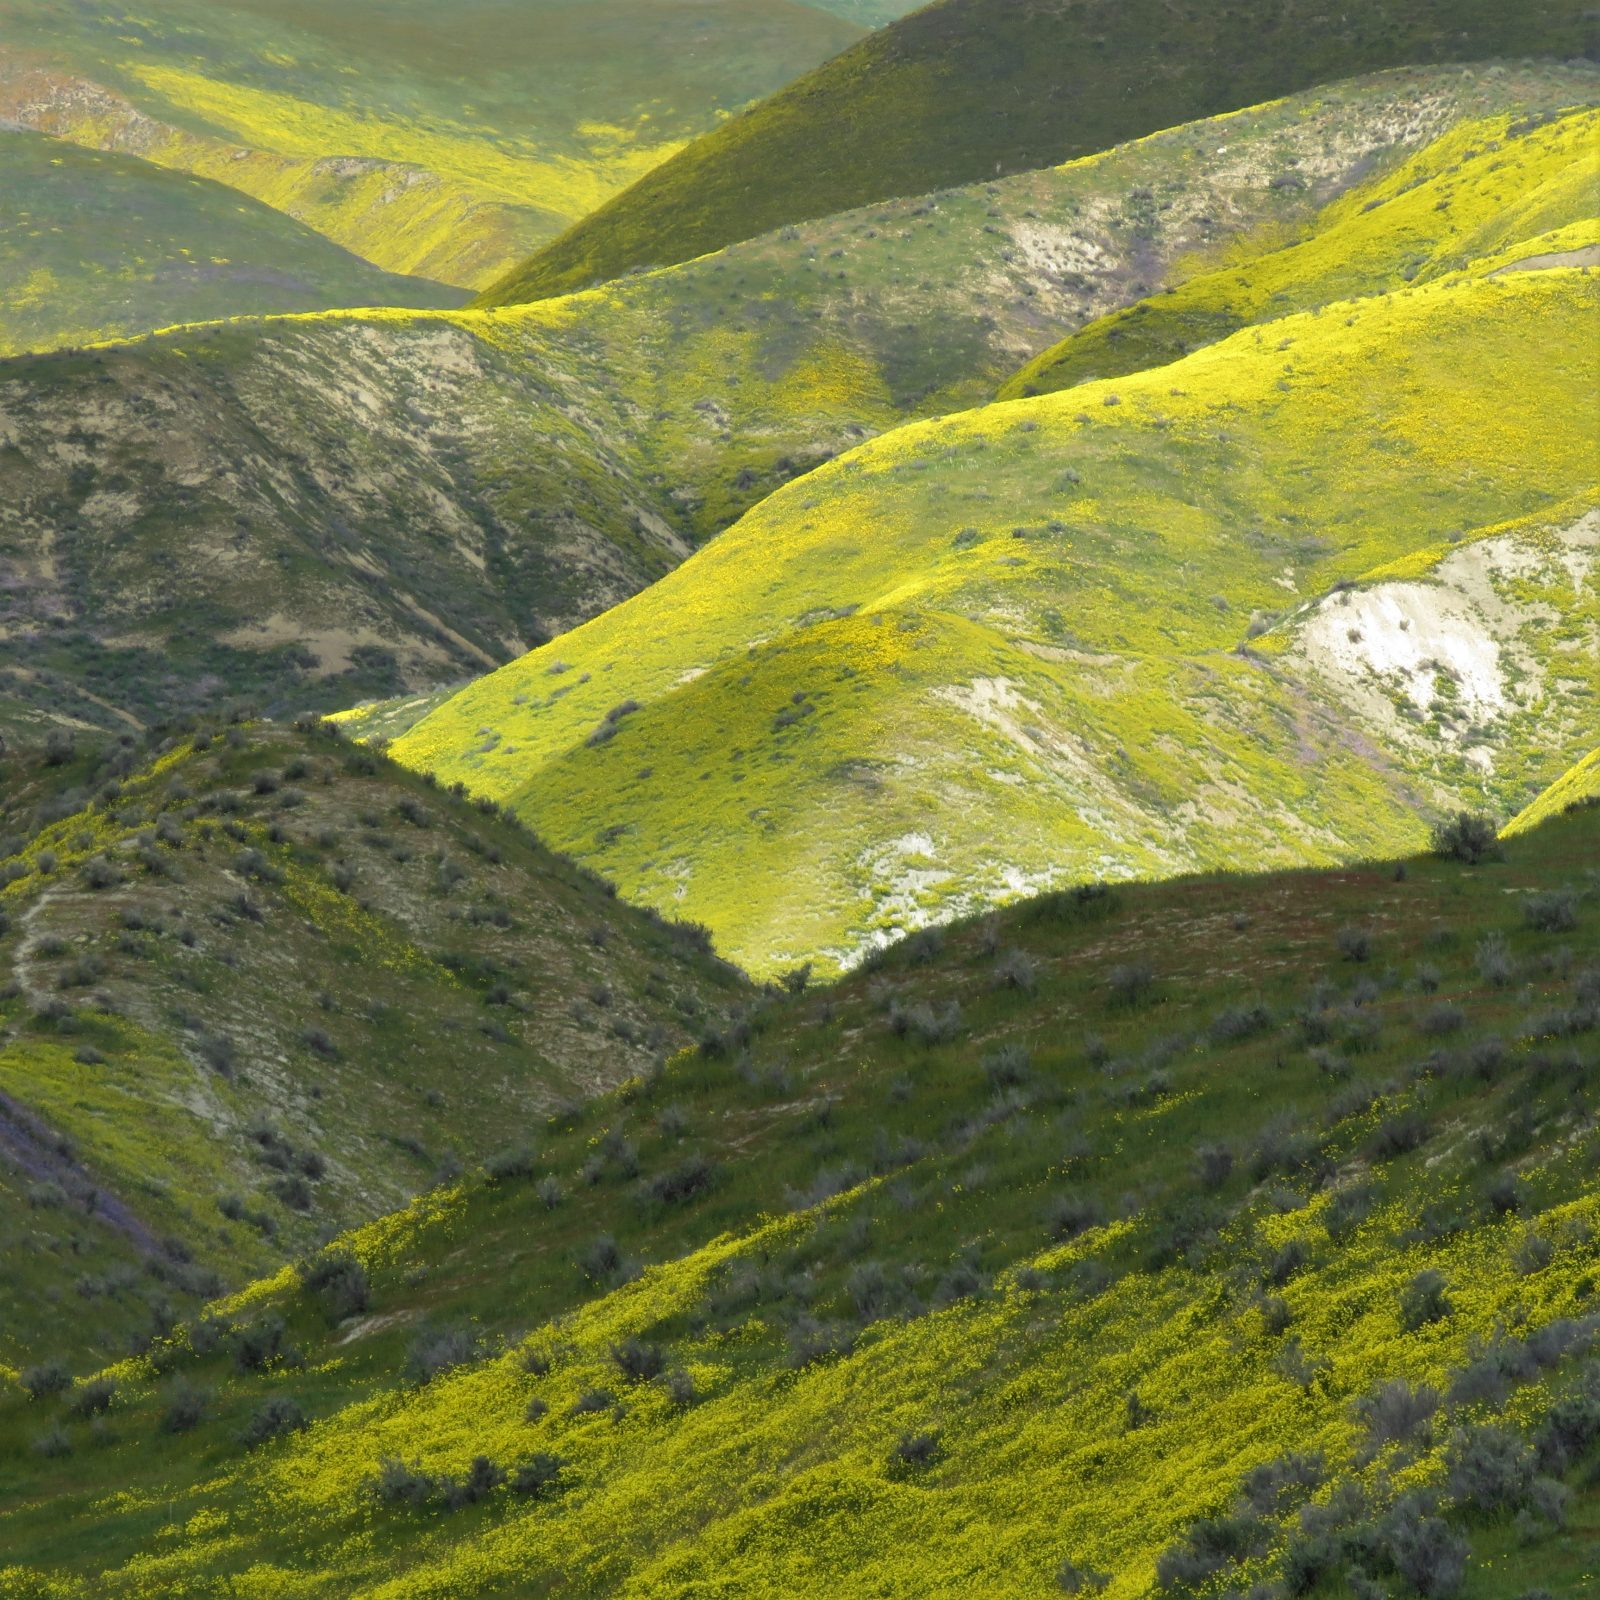 Flowers and Shadows in the Temblor Range